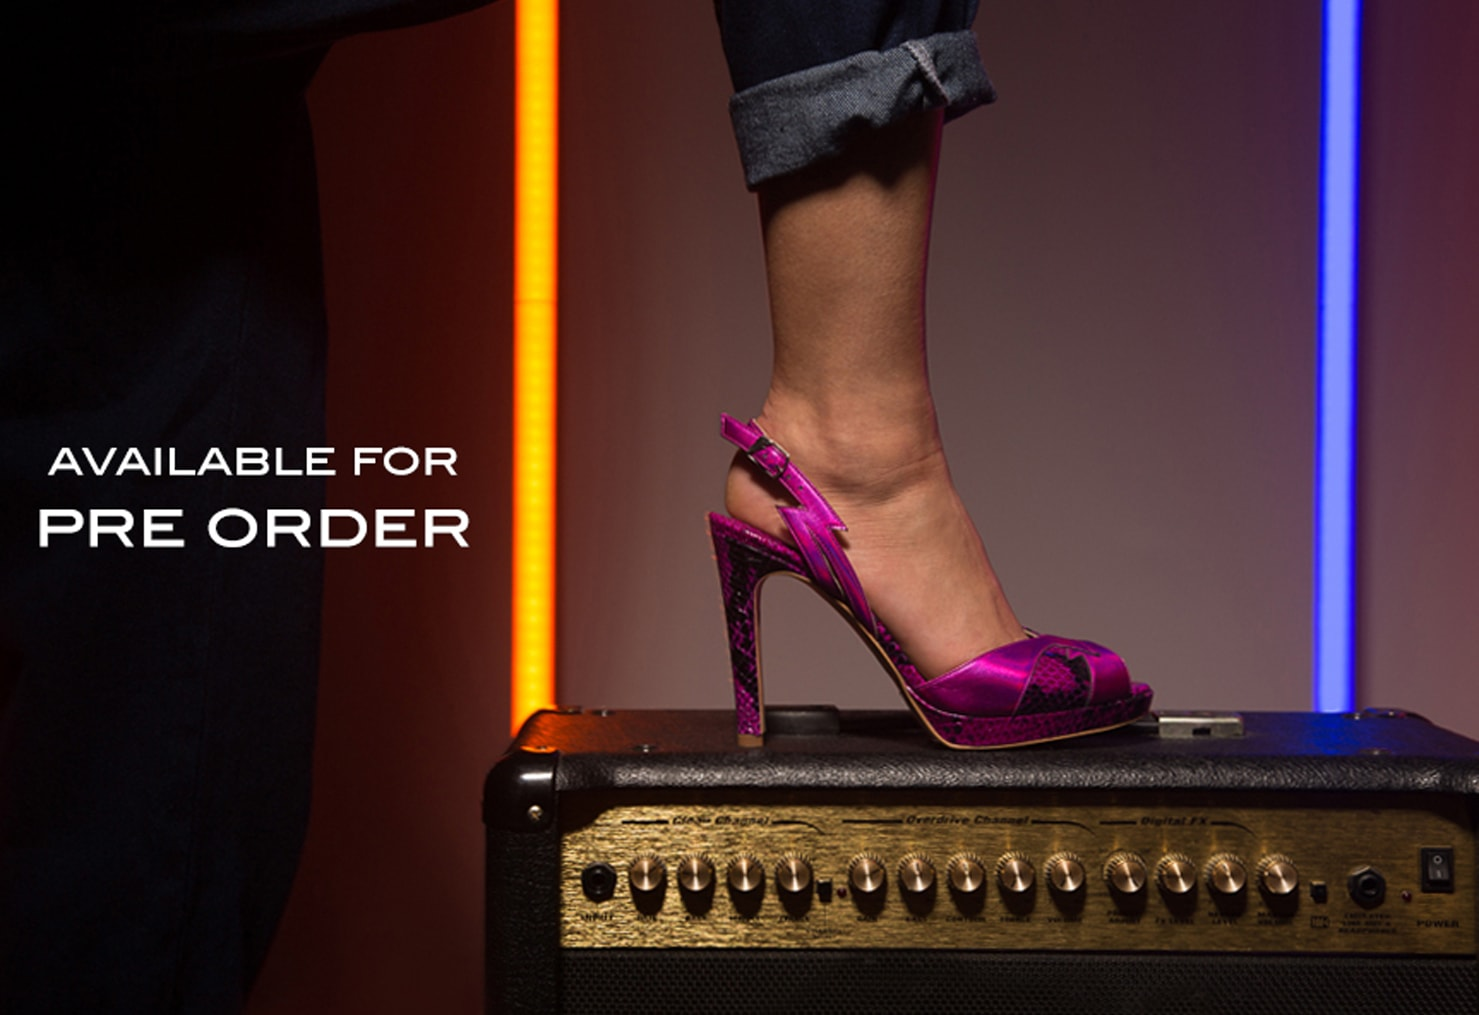 Ava pink shoe to pre order